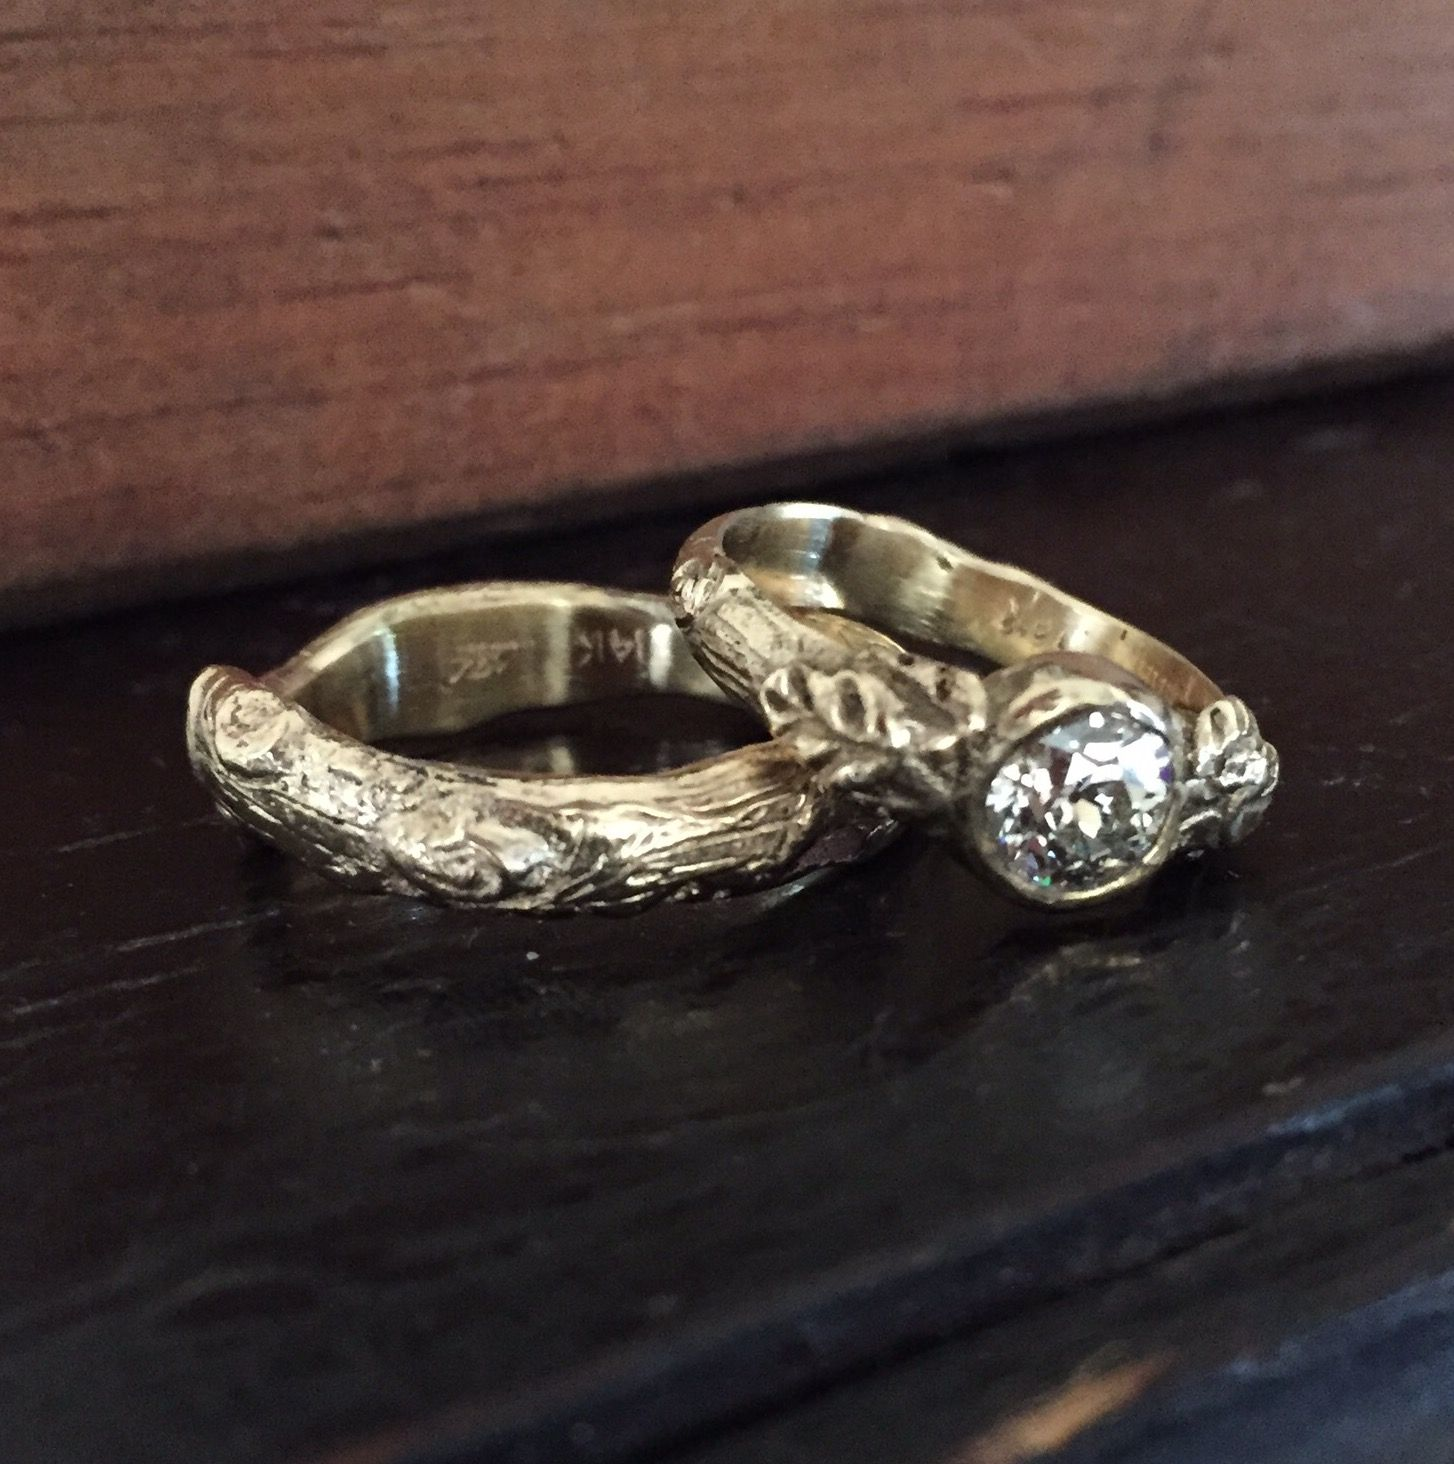 Leaf and twig wedding ring set 14k recycled gold and antique